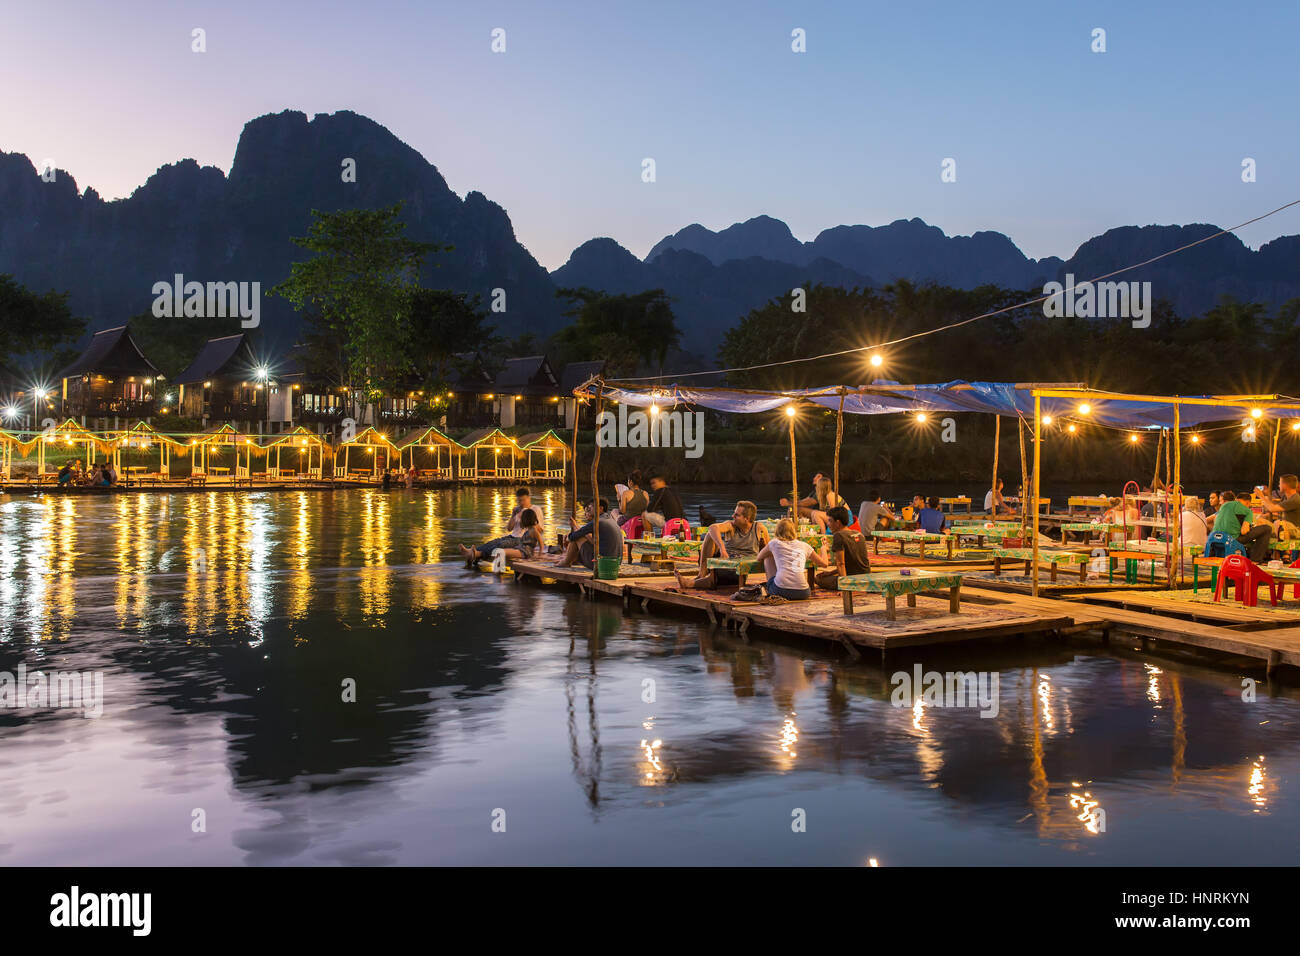 Vang Vieng, Laos - January 19, 2017: Restaurant on the riverfront during sunset in Vang Vieng, Laos - Stock Image